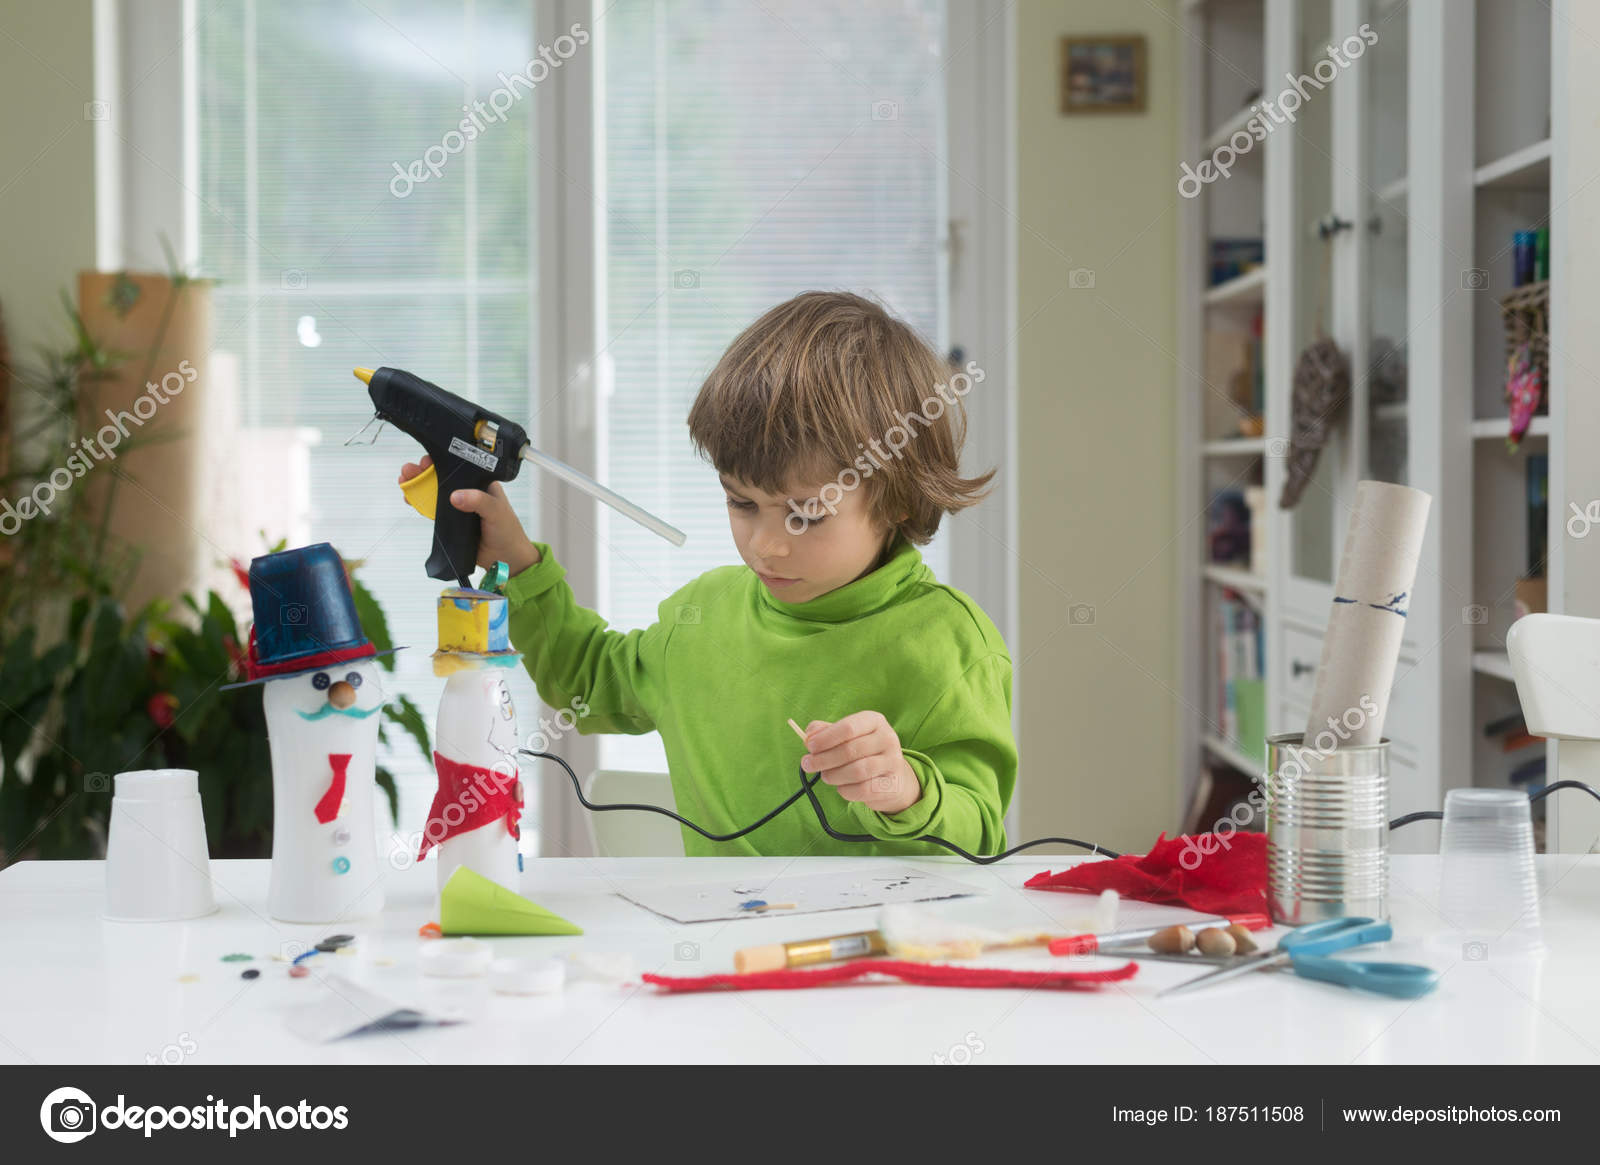 Little boy being creative making homemade yourself toys out yogurt little boy being creative making homemade do it yourself toys out of yogurt bottle and paper using hot melt glue gun supporting creativity learning by solutioingenieria Images